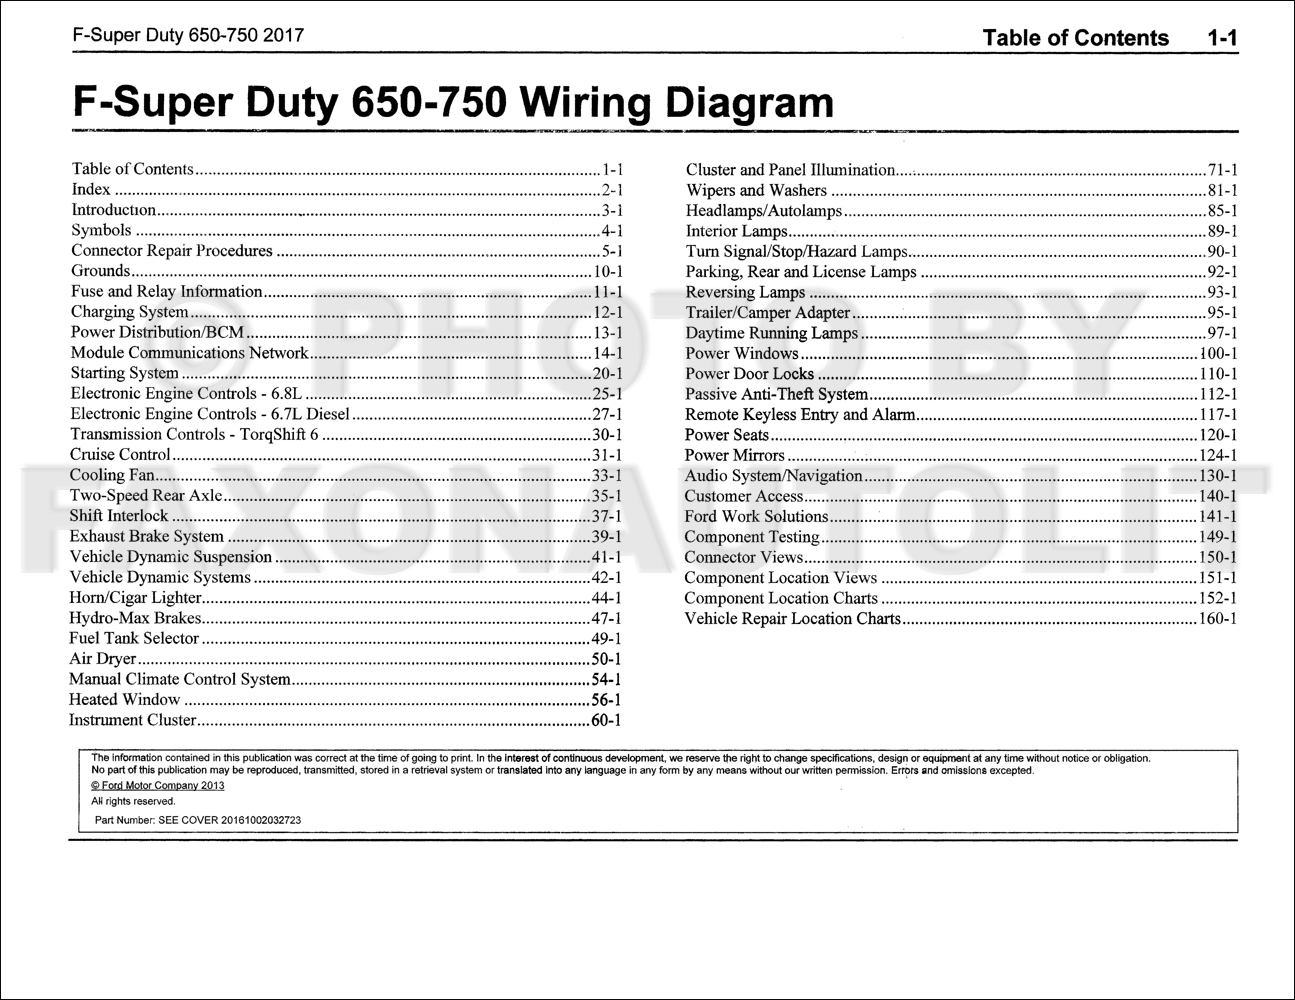 2006 Ford F 250 Wiring Diagram Customer Access 2008 F650 Interior Lamp Free Download 2017 650 And 750 Super Duty Truck Manual